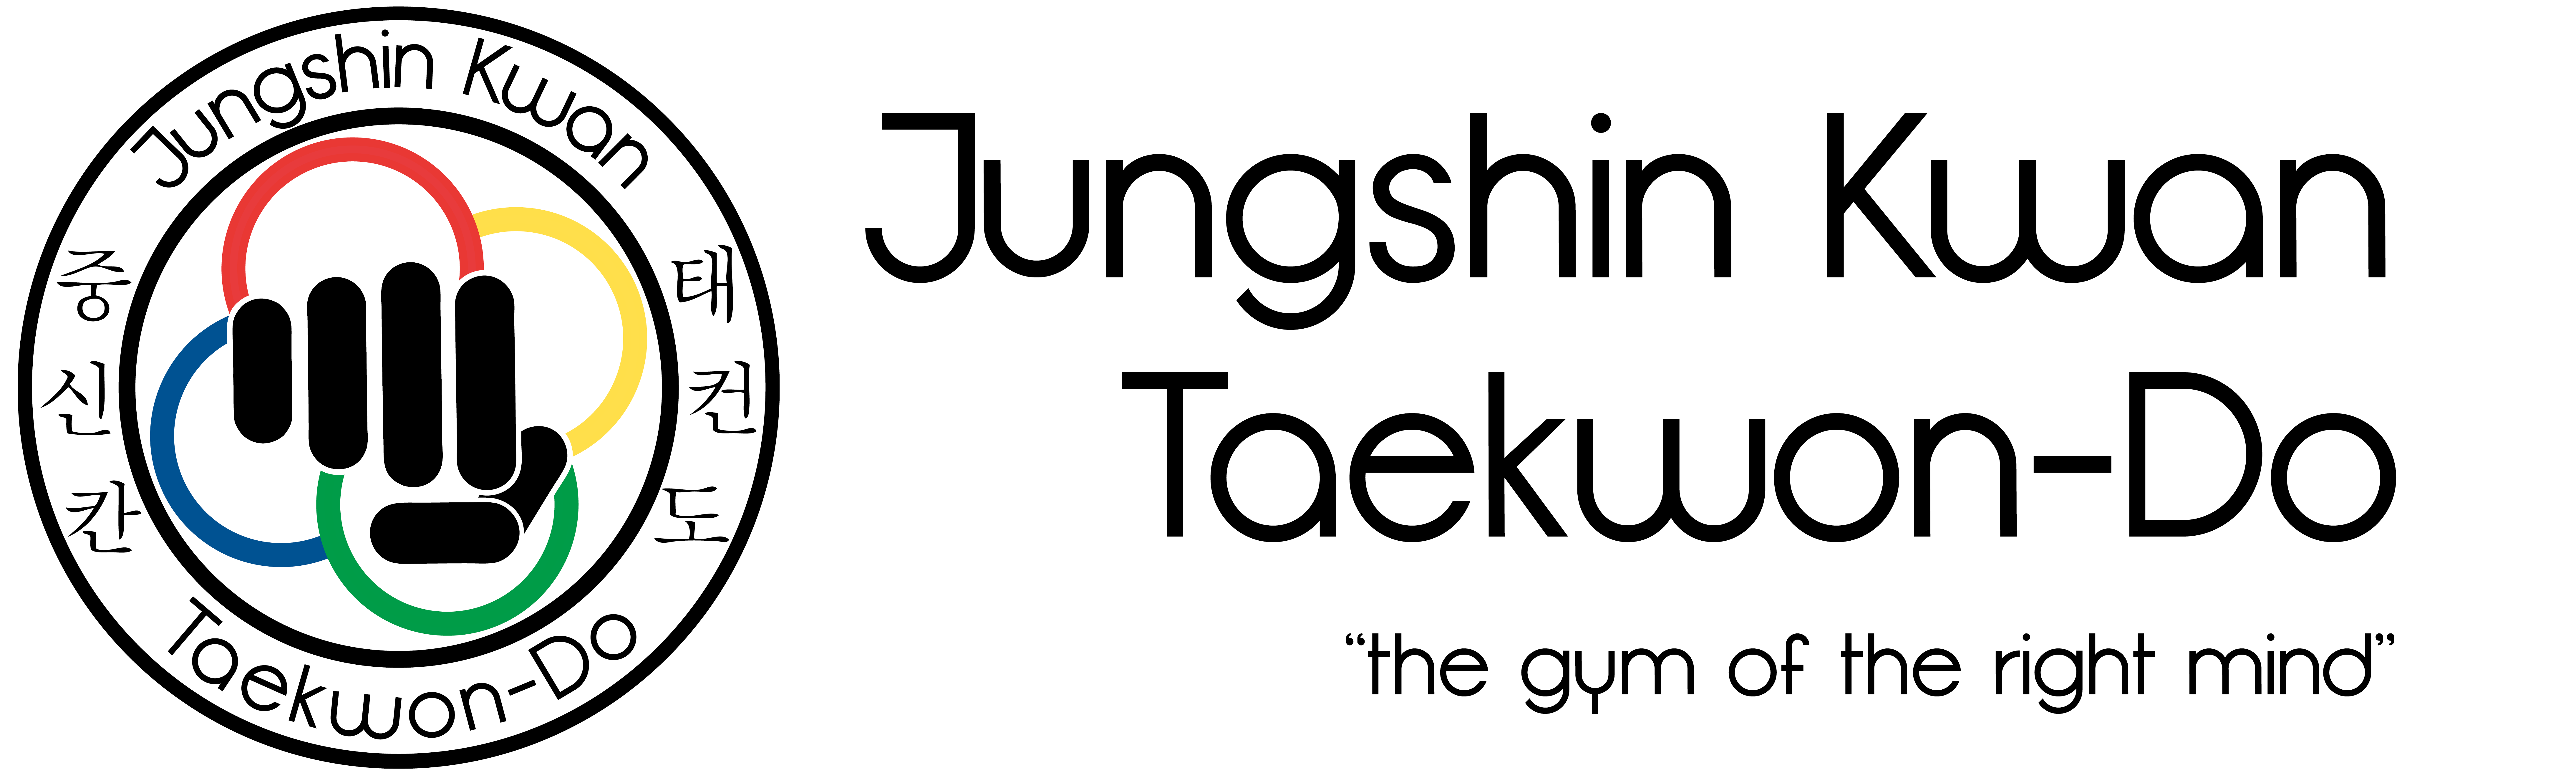 Taekwon-Do club Jungshin Kwan